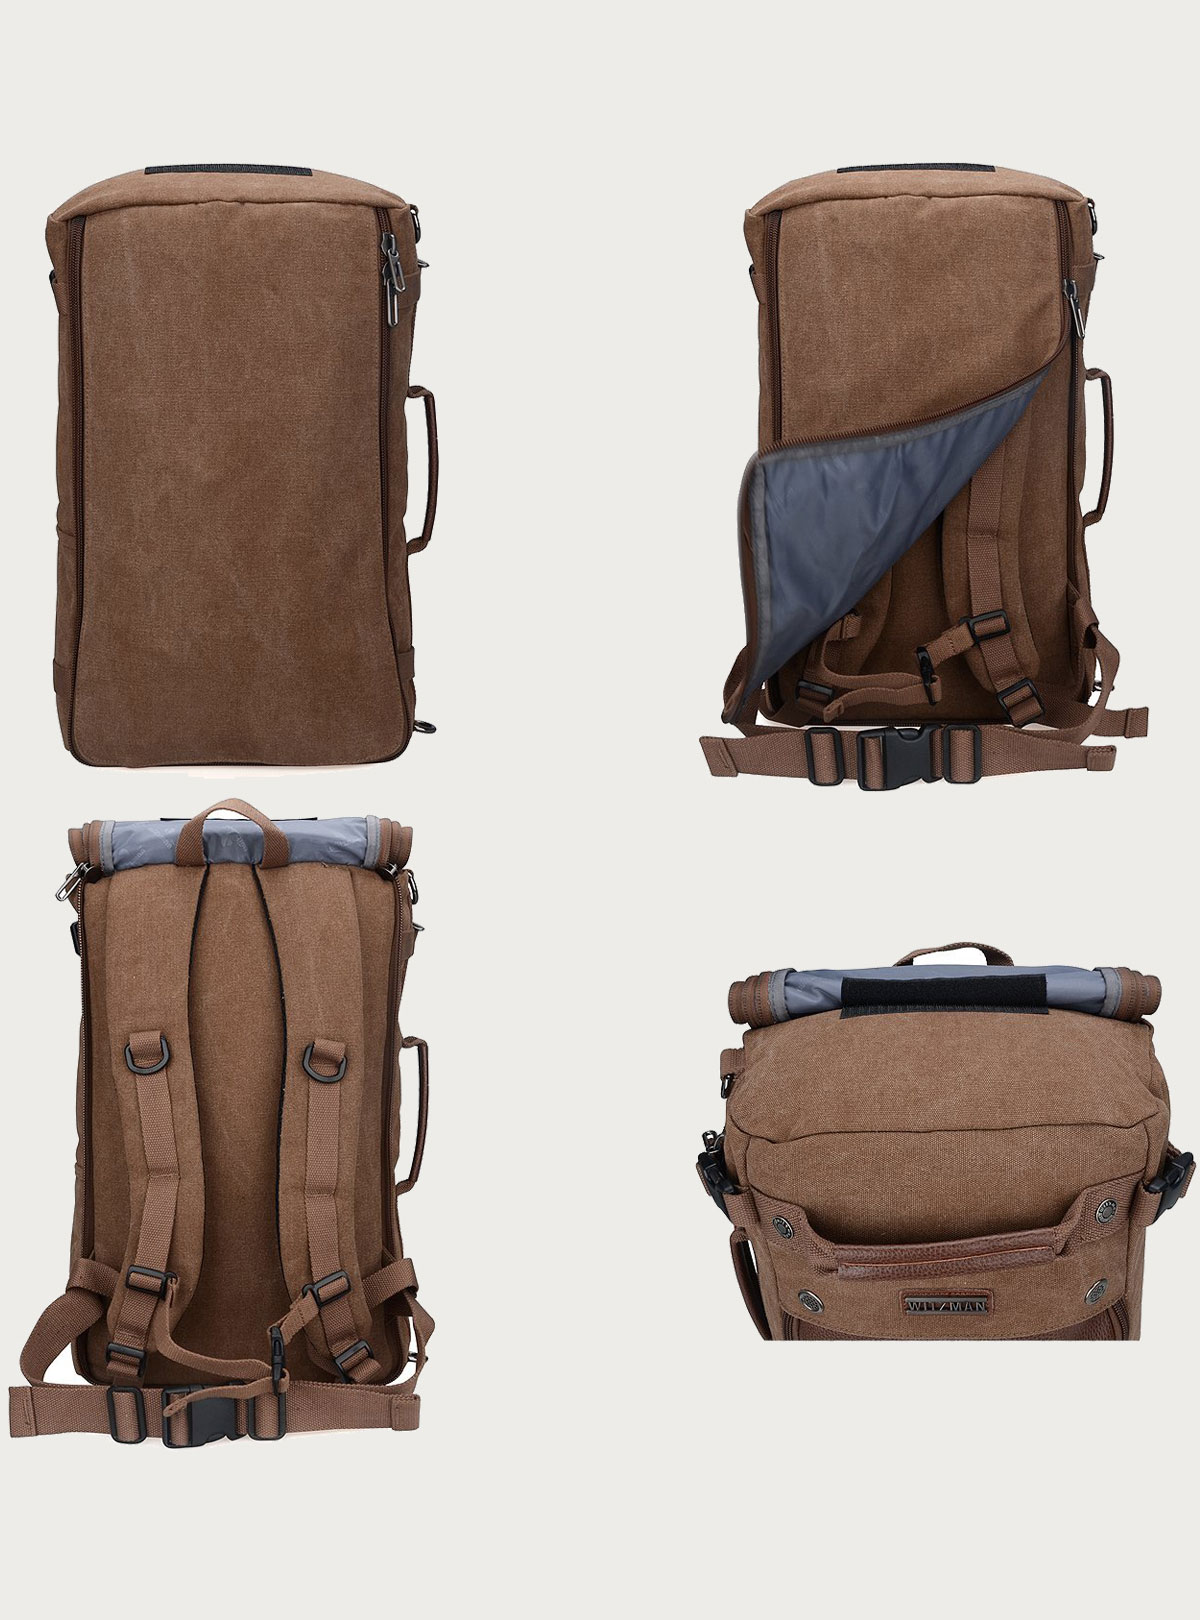 Witzman Men's Vintage Duffle Bags for Men Canvas Shoulder Outdoor Travel Backpack A2020 Brown